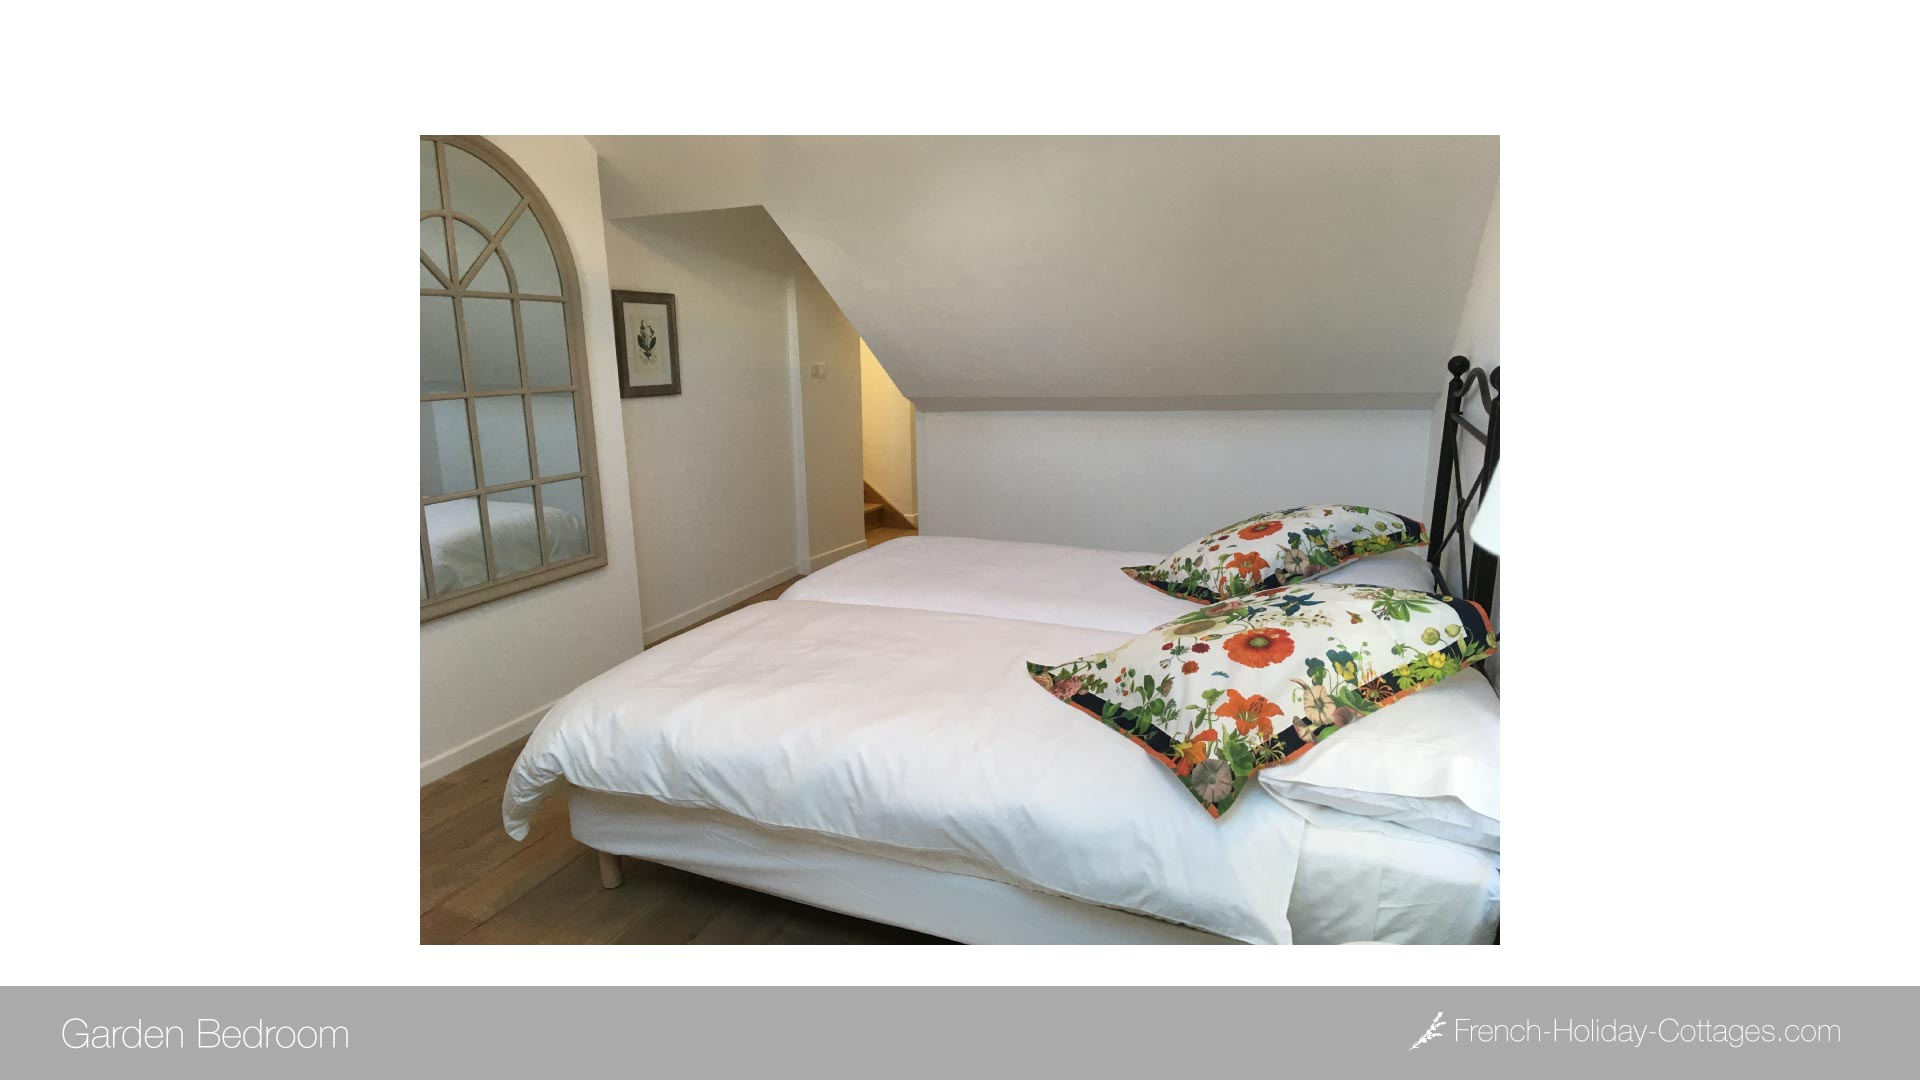 2.4-burgundy-vacation-rental-bedroom-2a - french-holiday-cottages.com